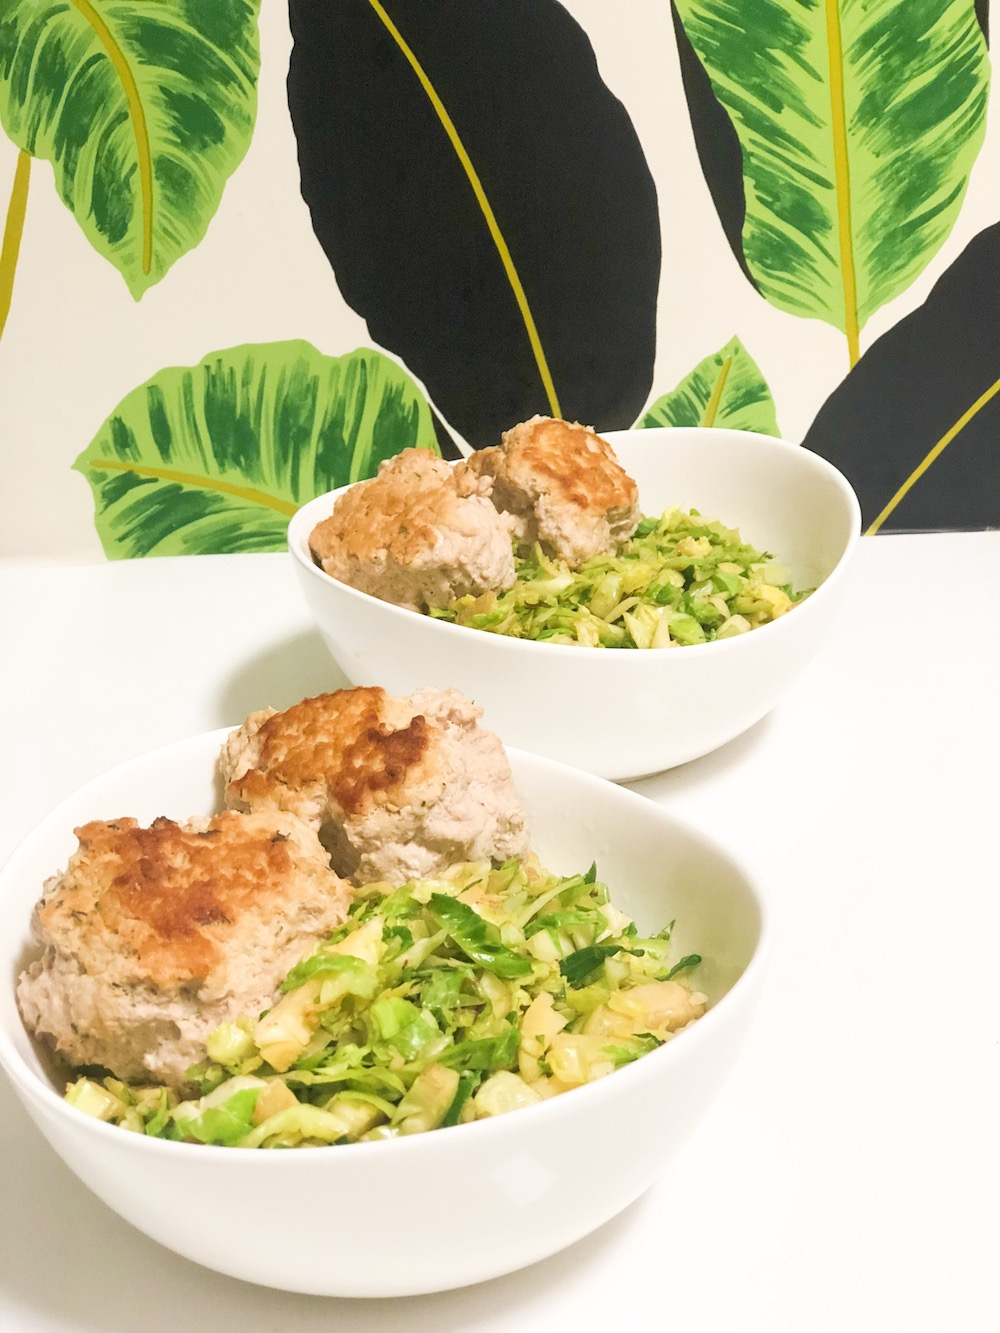 Turkey Meatballs and Brussels Sprouts Rice